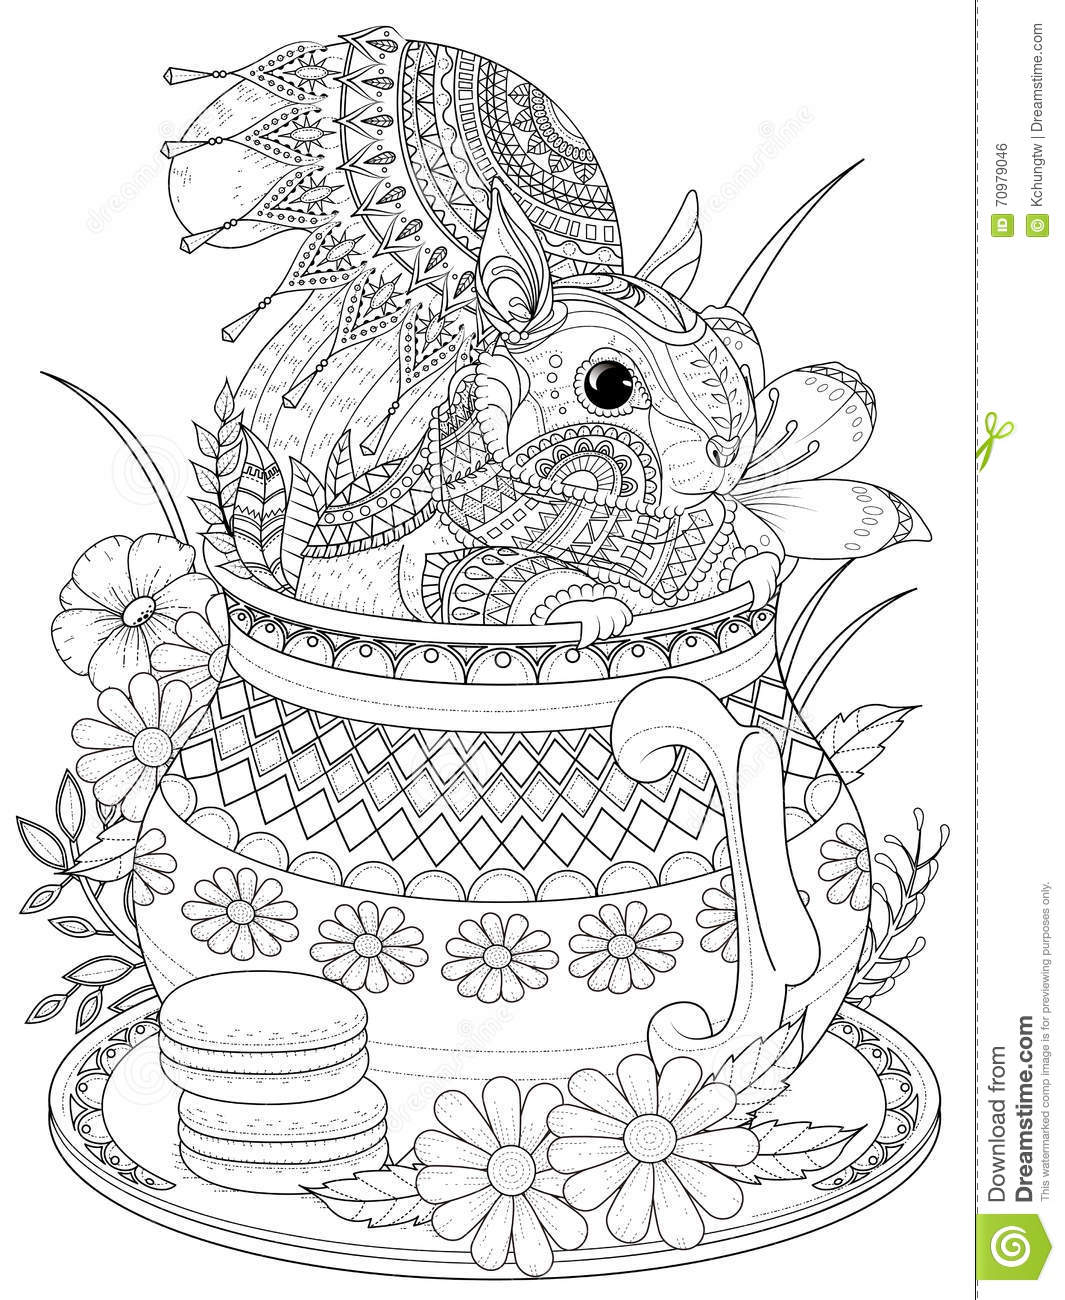 Adorable Squirrel Adult Coloring Page Stock Illustration ...